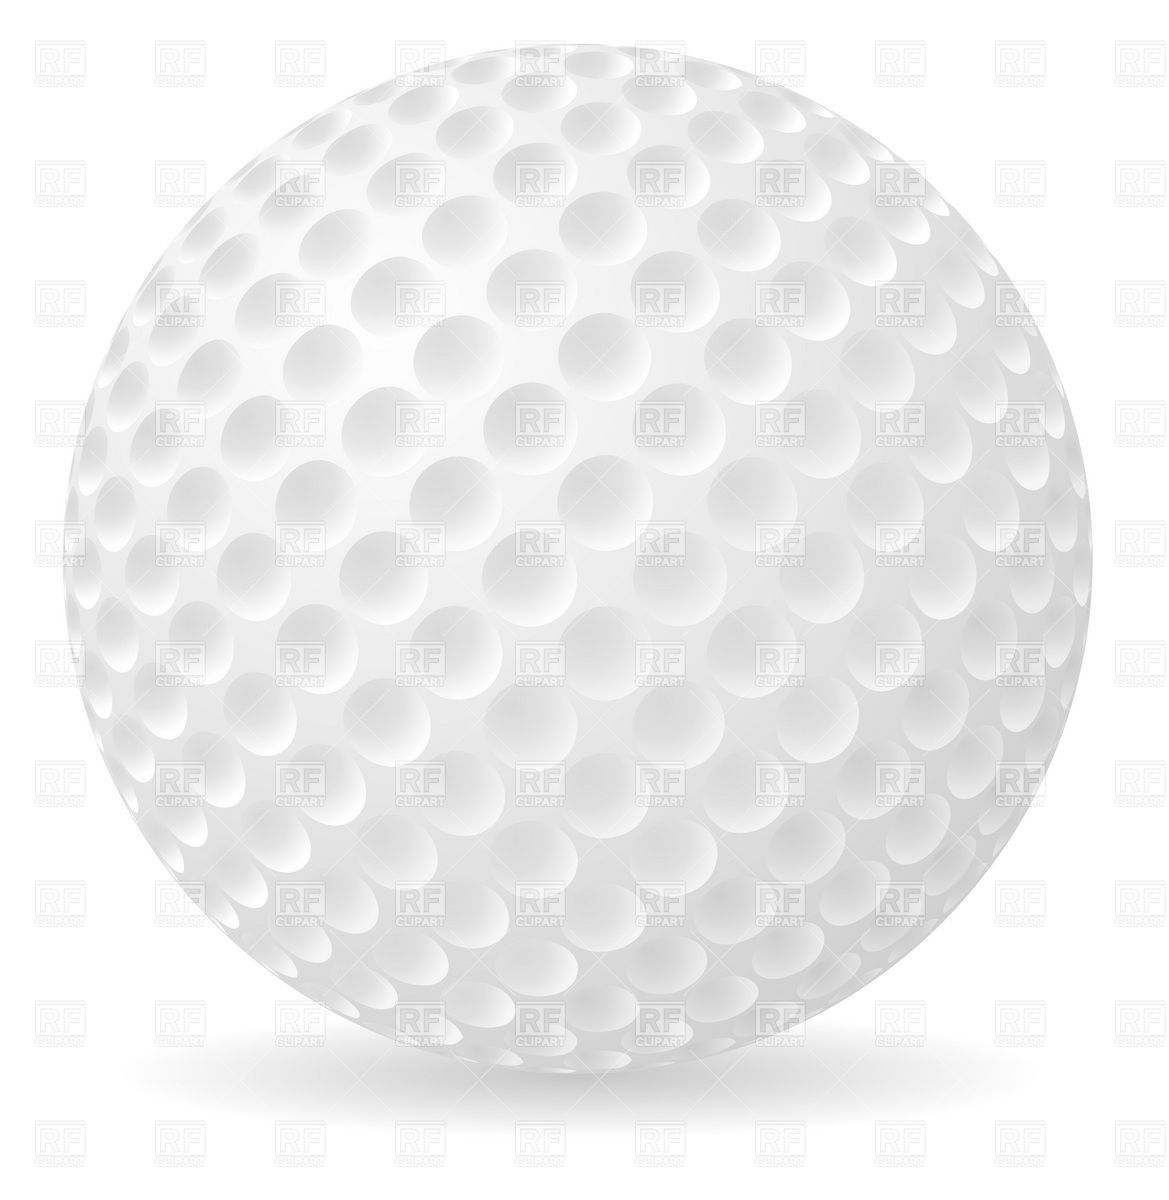 Golf ball pictures of golf clubs and balls clipart.